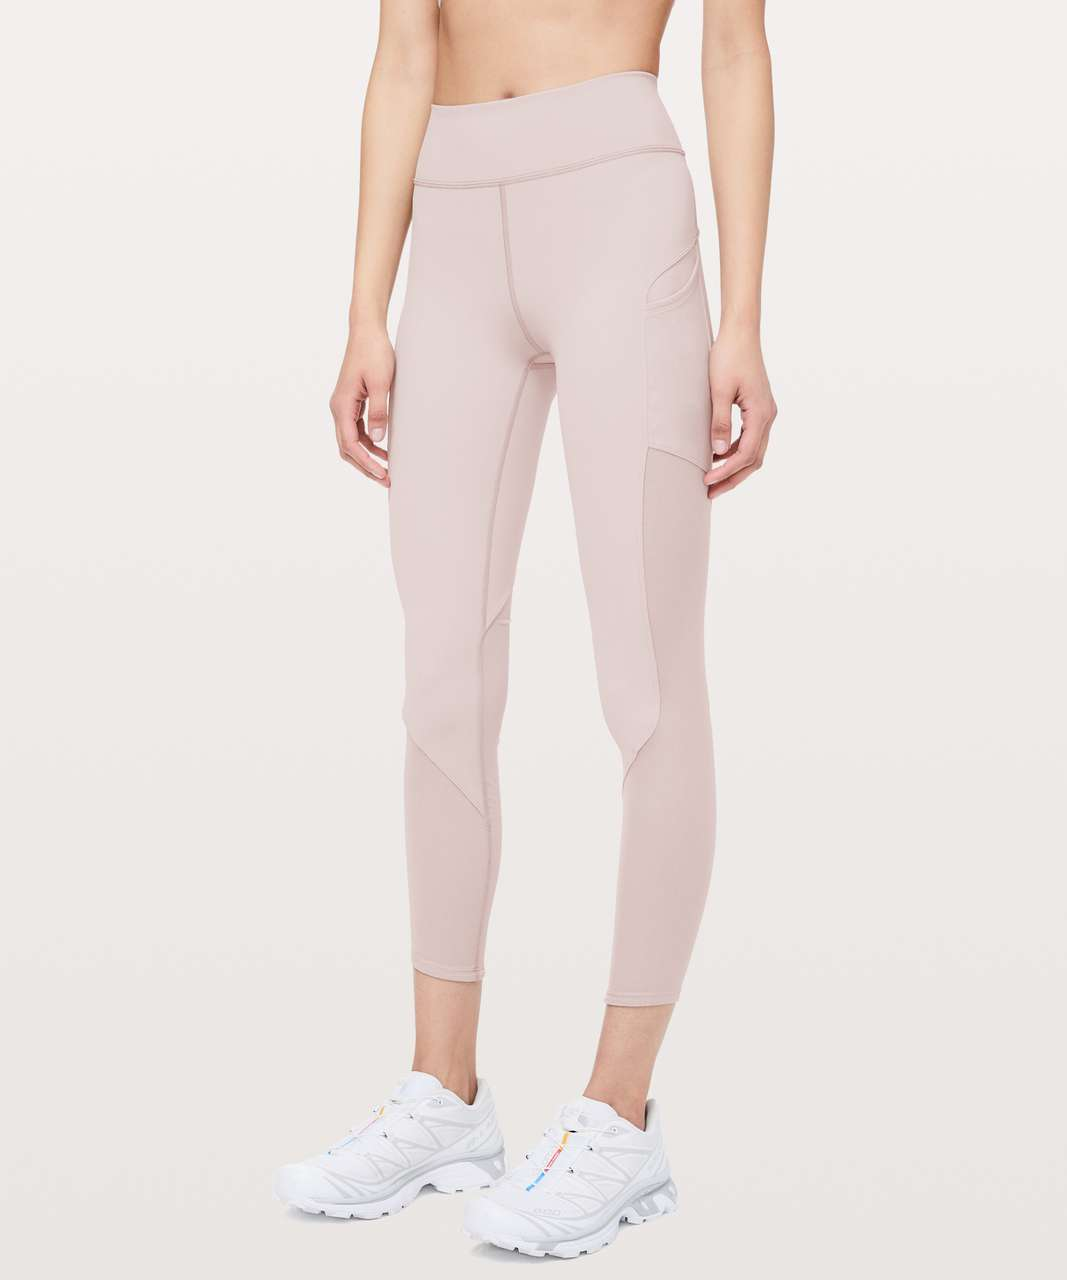 Lululemon Skip Tight *lululemon Lab - Silky